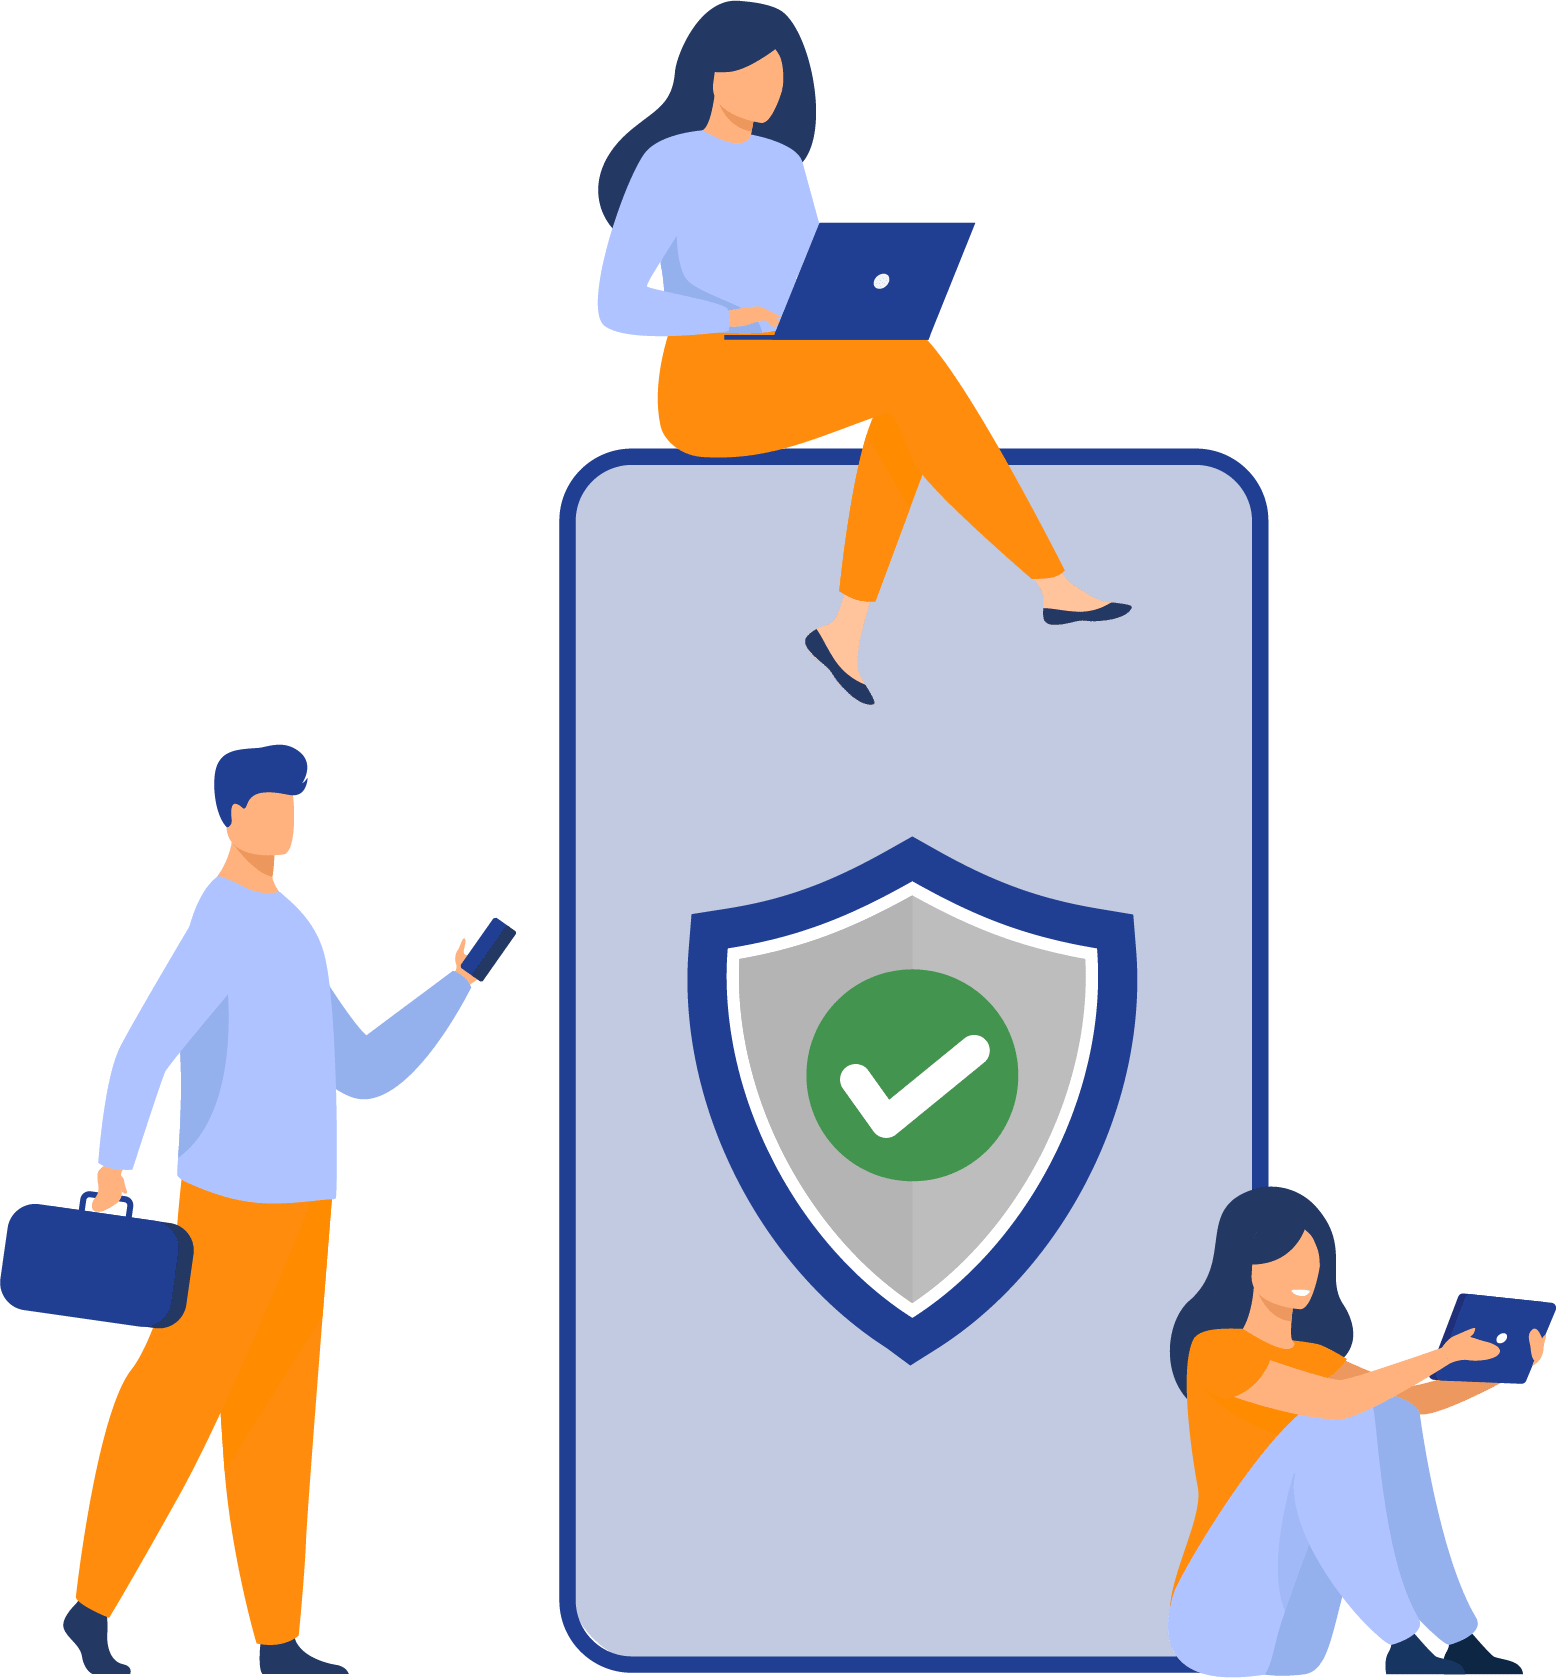 MFA-multifactor-authentication-apps